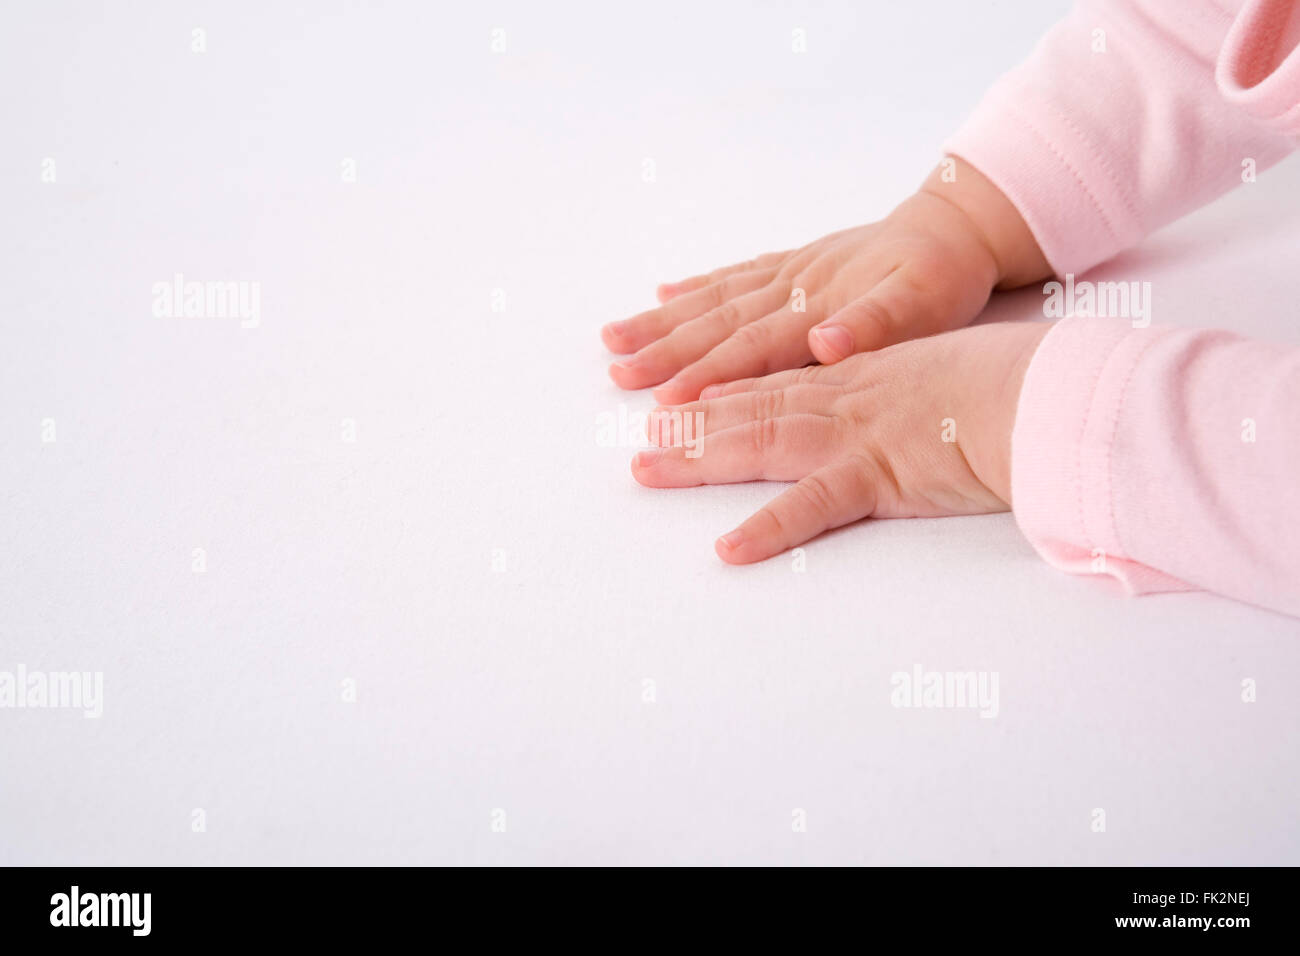 Baby hands on the floor on white background - Stock Image